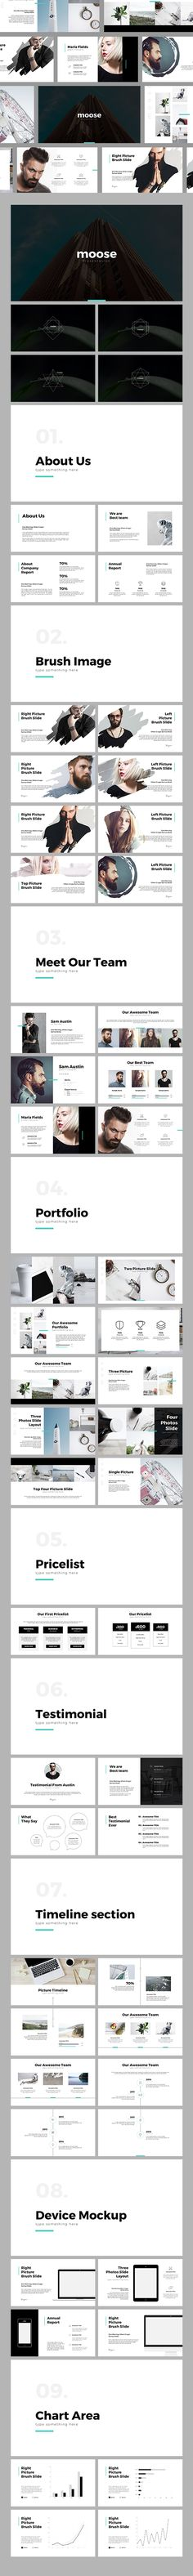 MOOSE - PowerPoint Template (PowerPoint Templates)